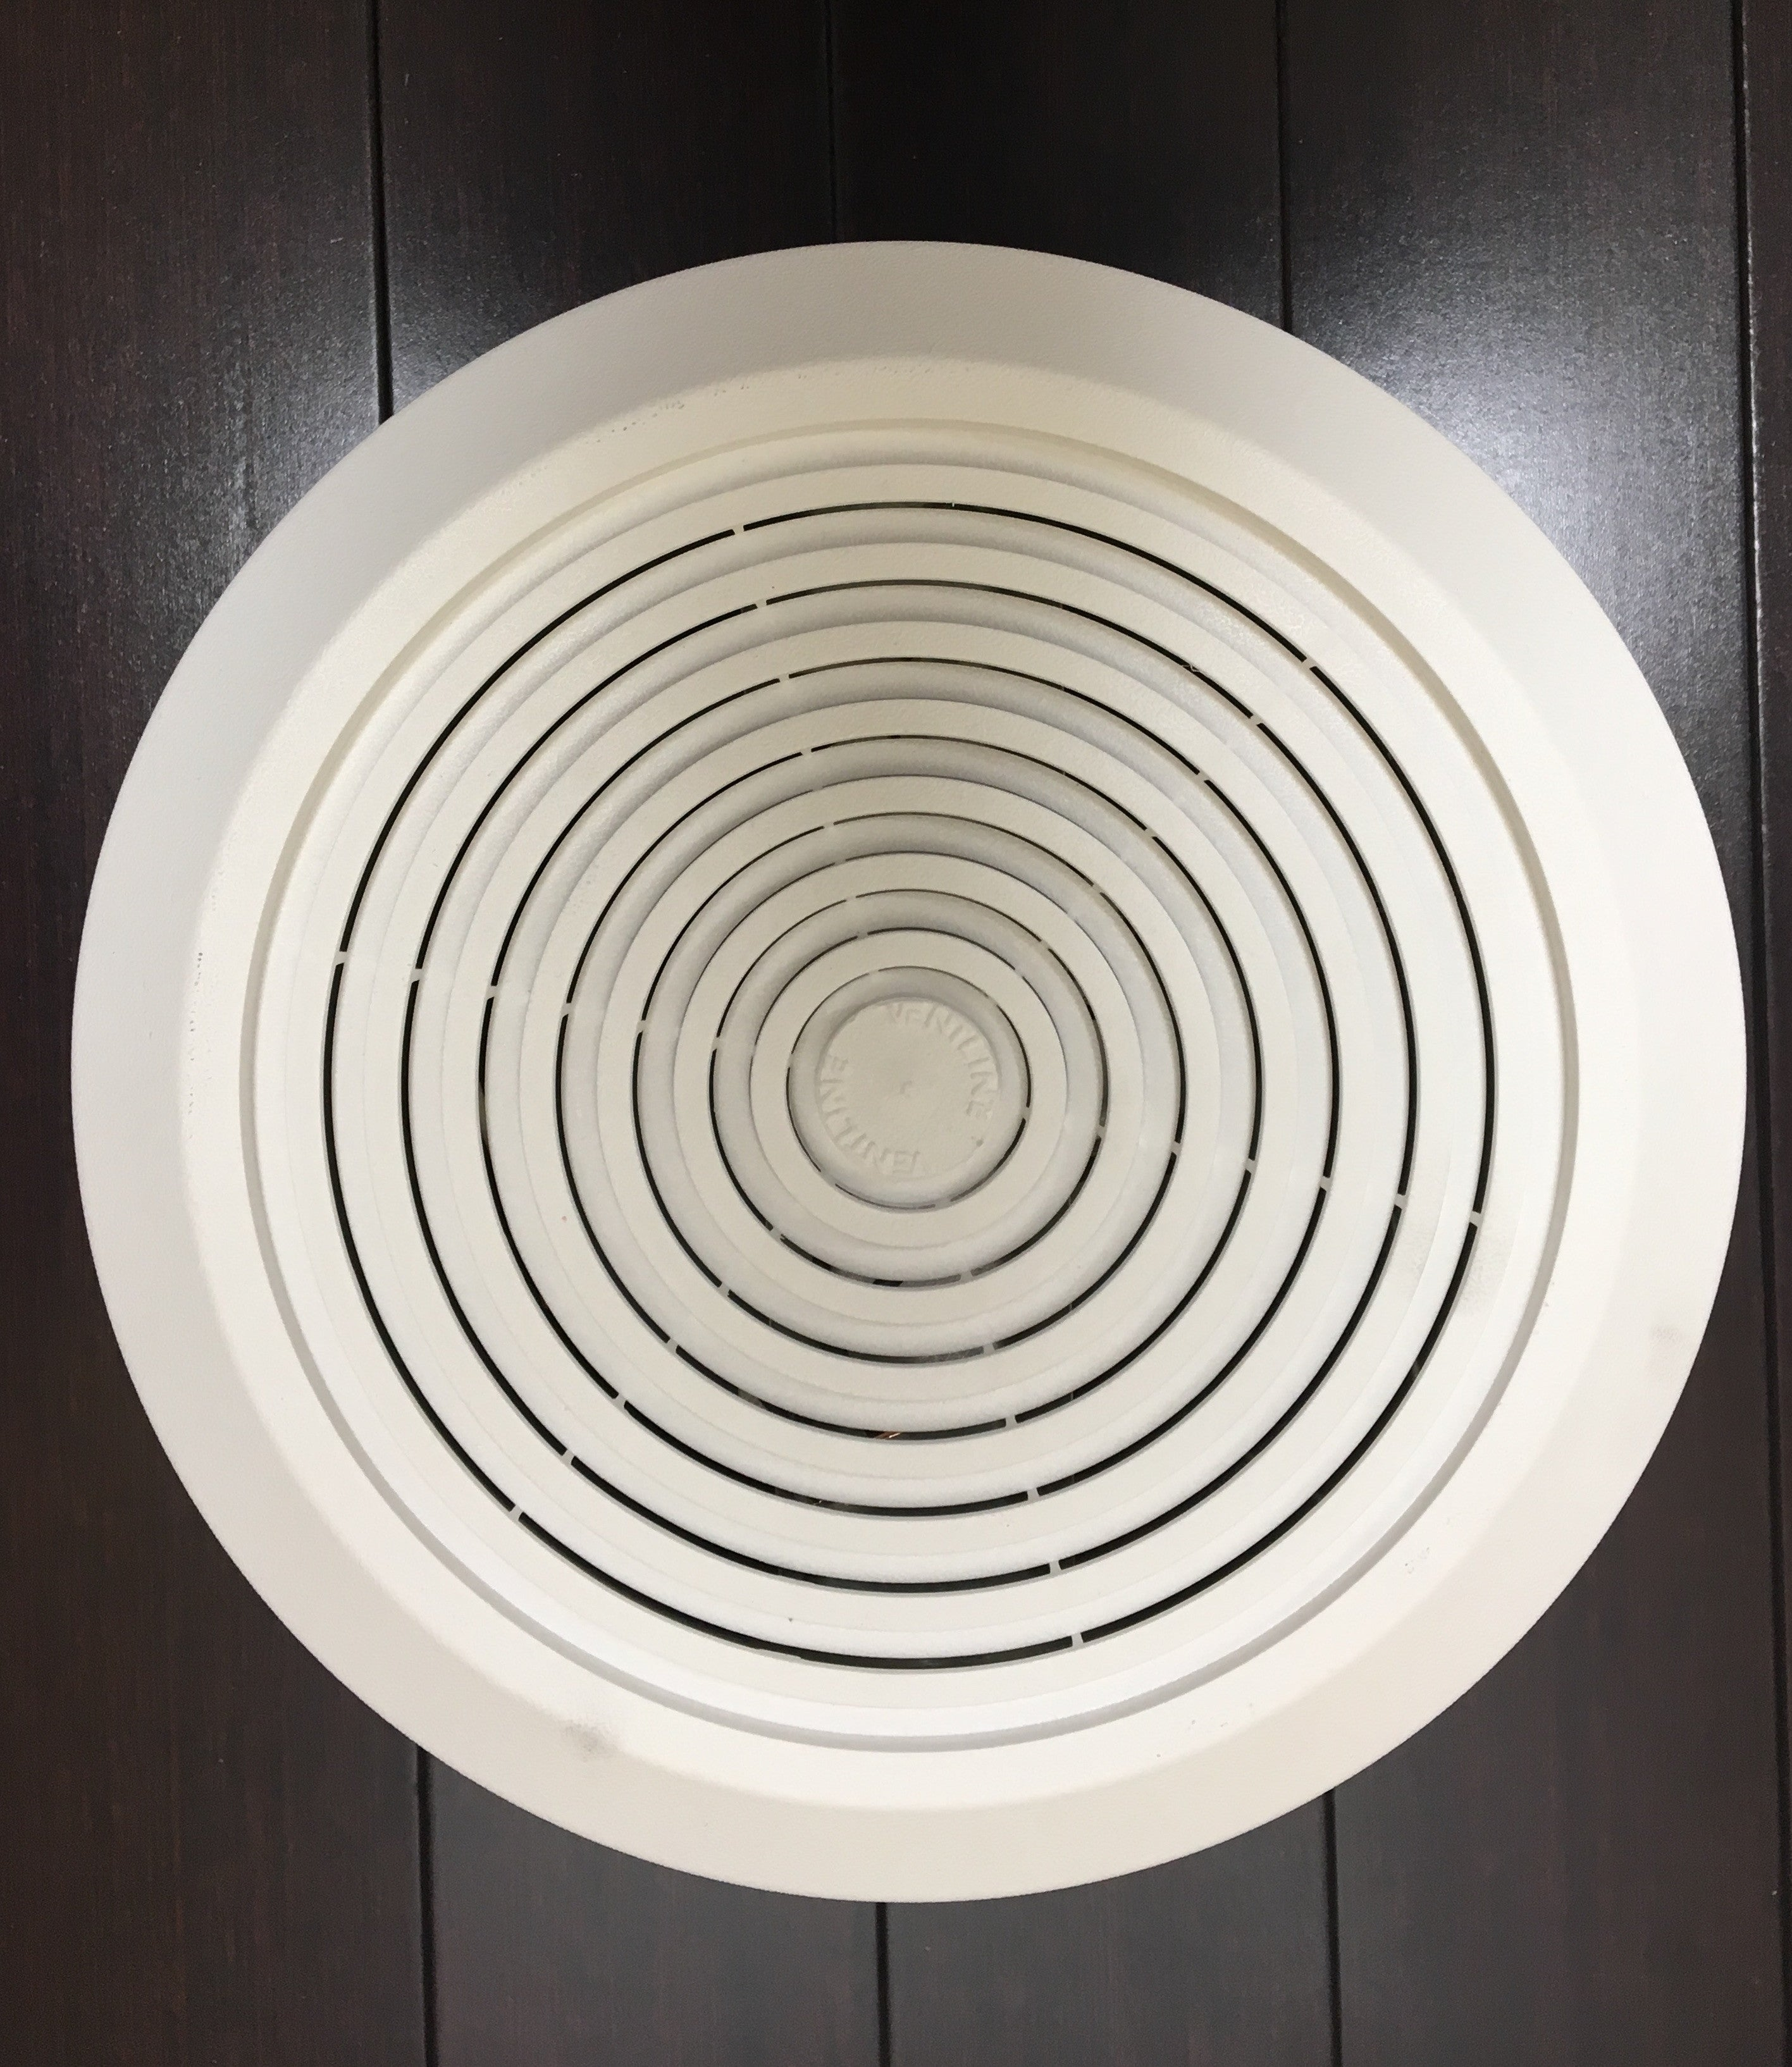 Ventline bathroom ceiling exhaust fan 8 round ml mobile home ventline bathroom ceiling exhaust fan 8 round mozeypictures Image collections